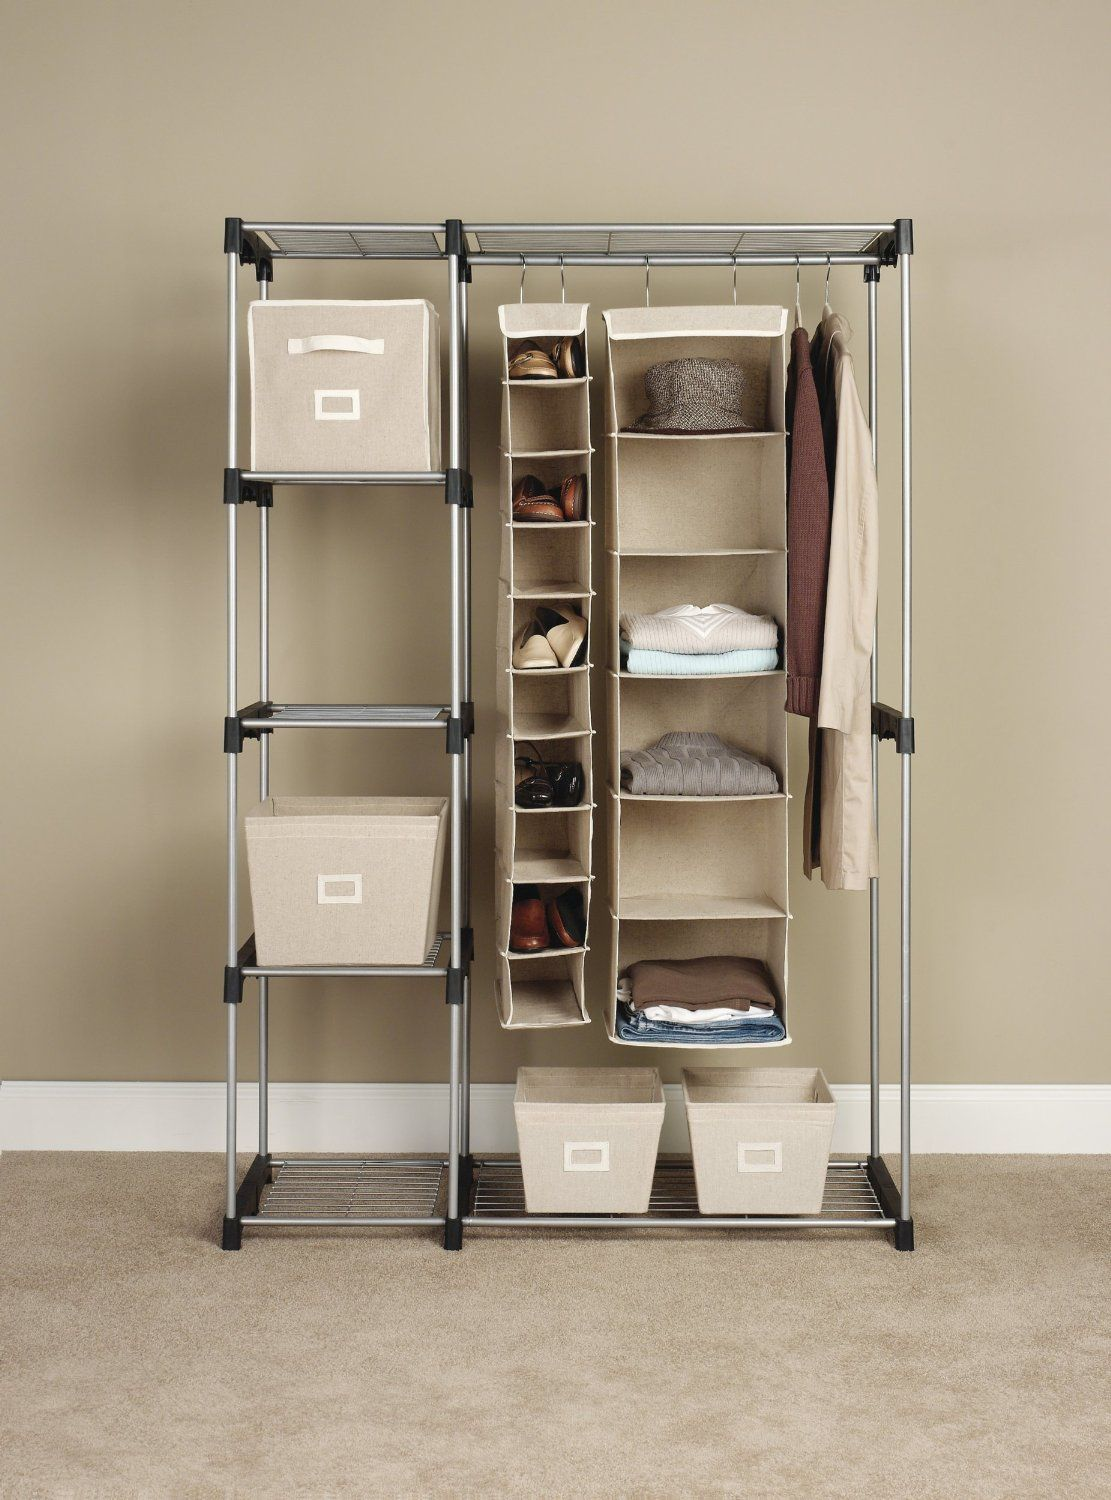 Closet Storage Ideas amazon most popular item: give your sweaters, socks and shoes